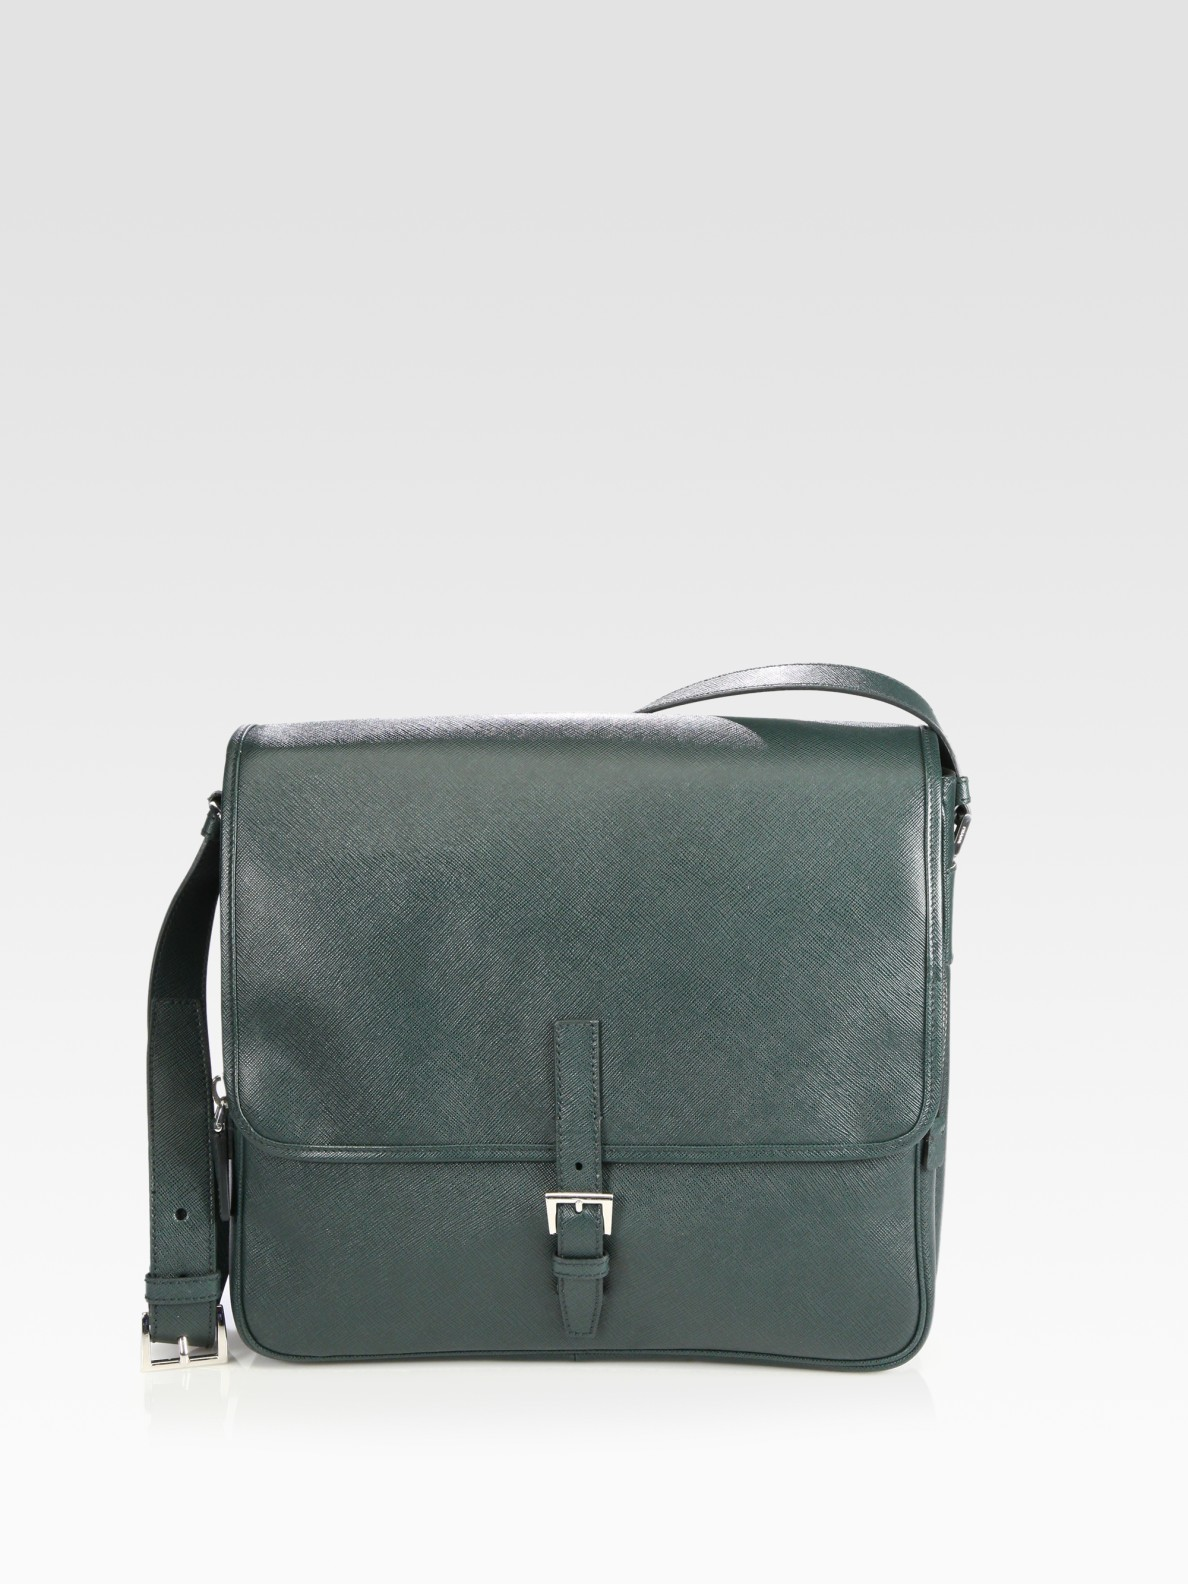 de92a4fd3bca Prada Messenger Bag Green | Stanford Center for Opportunity Policy ...